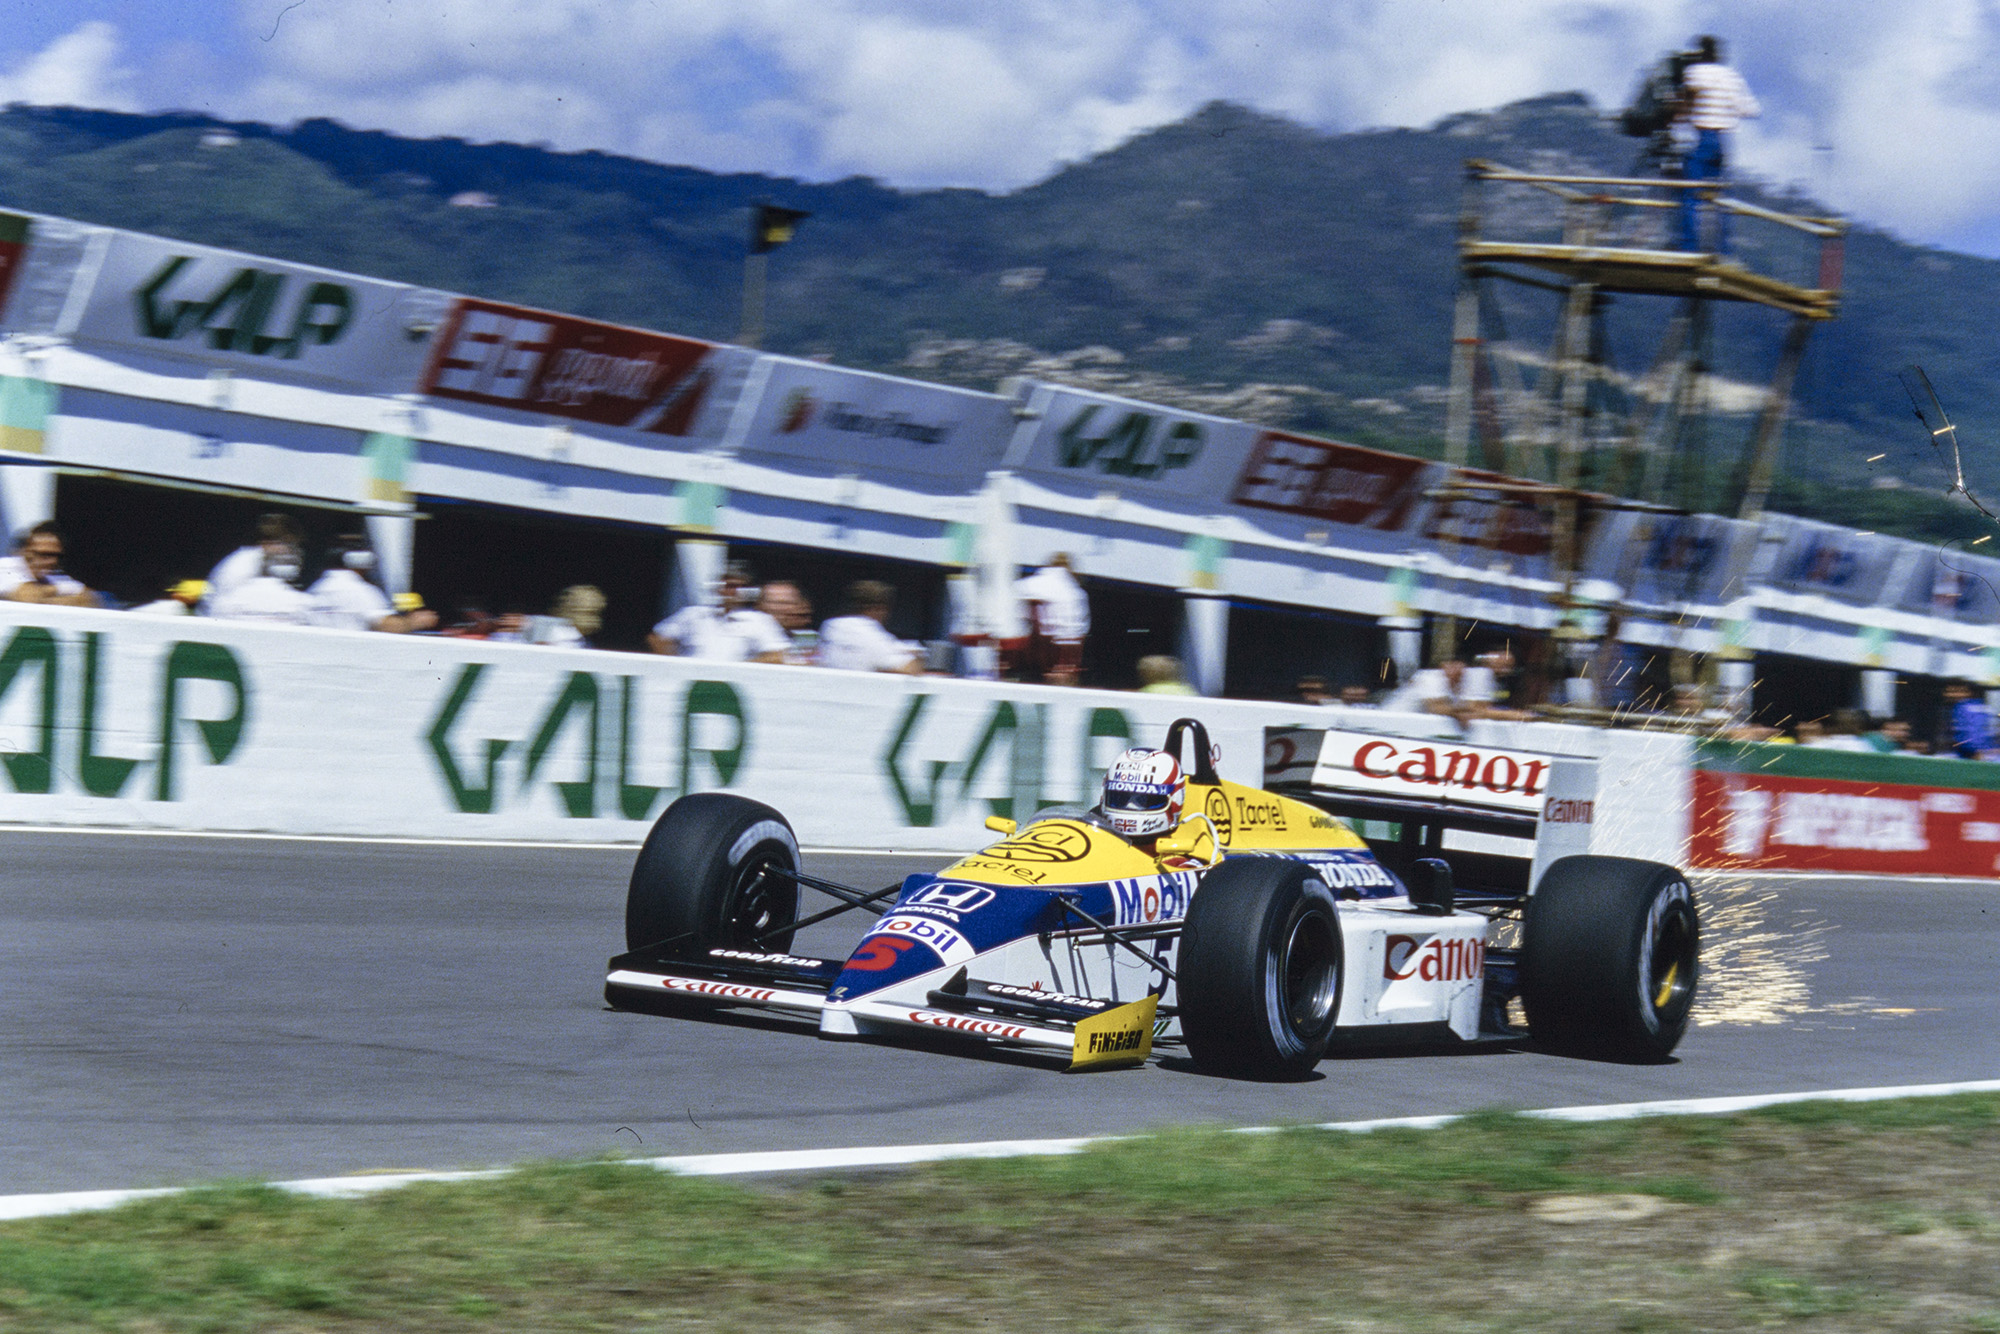 Sparks fly from Nigel Mansell's Williams in the 1986 Portuguese Grand Prix